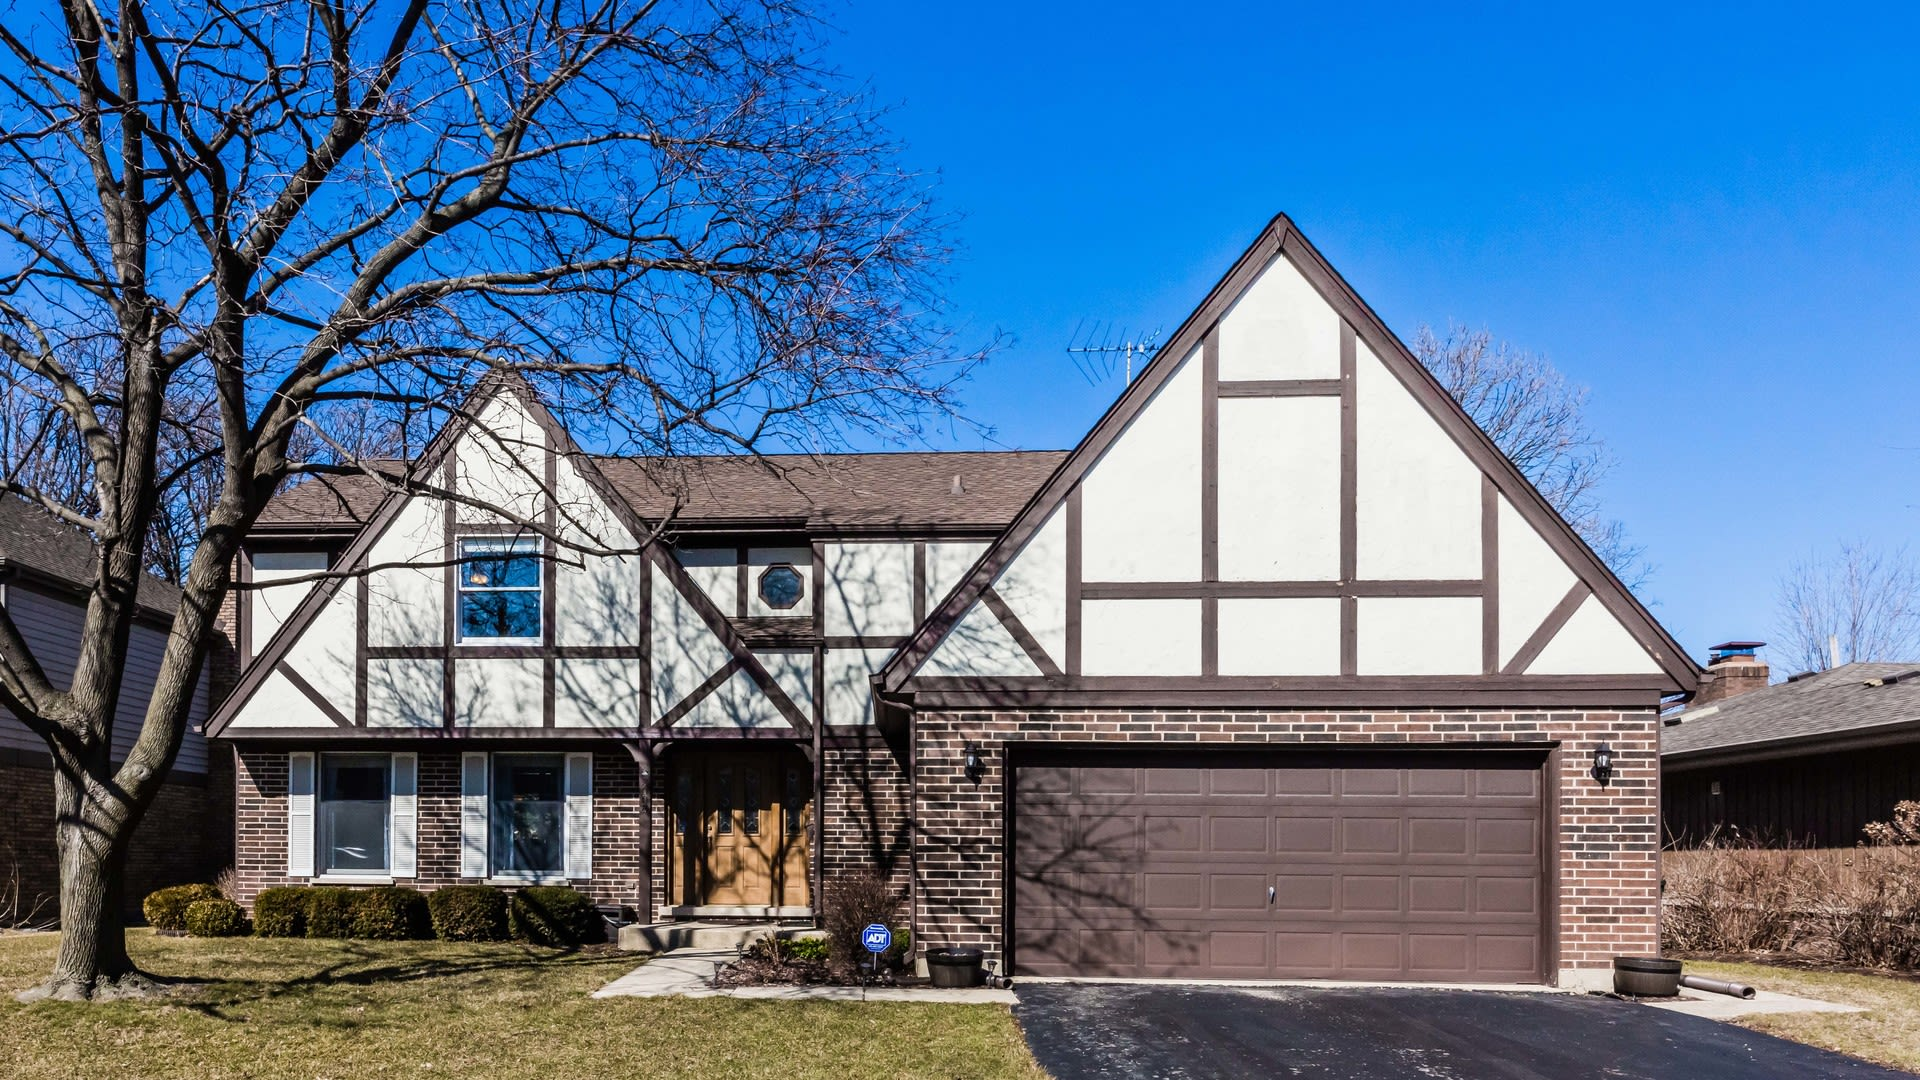 Just reduced! Open House, 3008 Edgemont, Park Ridge, 60068 Sunday April 22, 2018 from 1-3